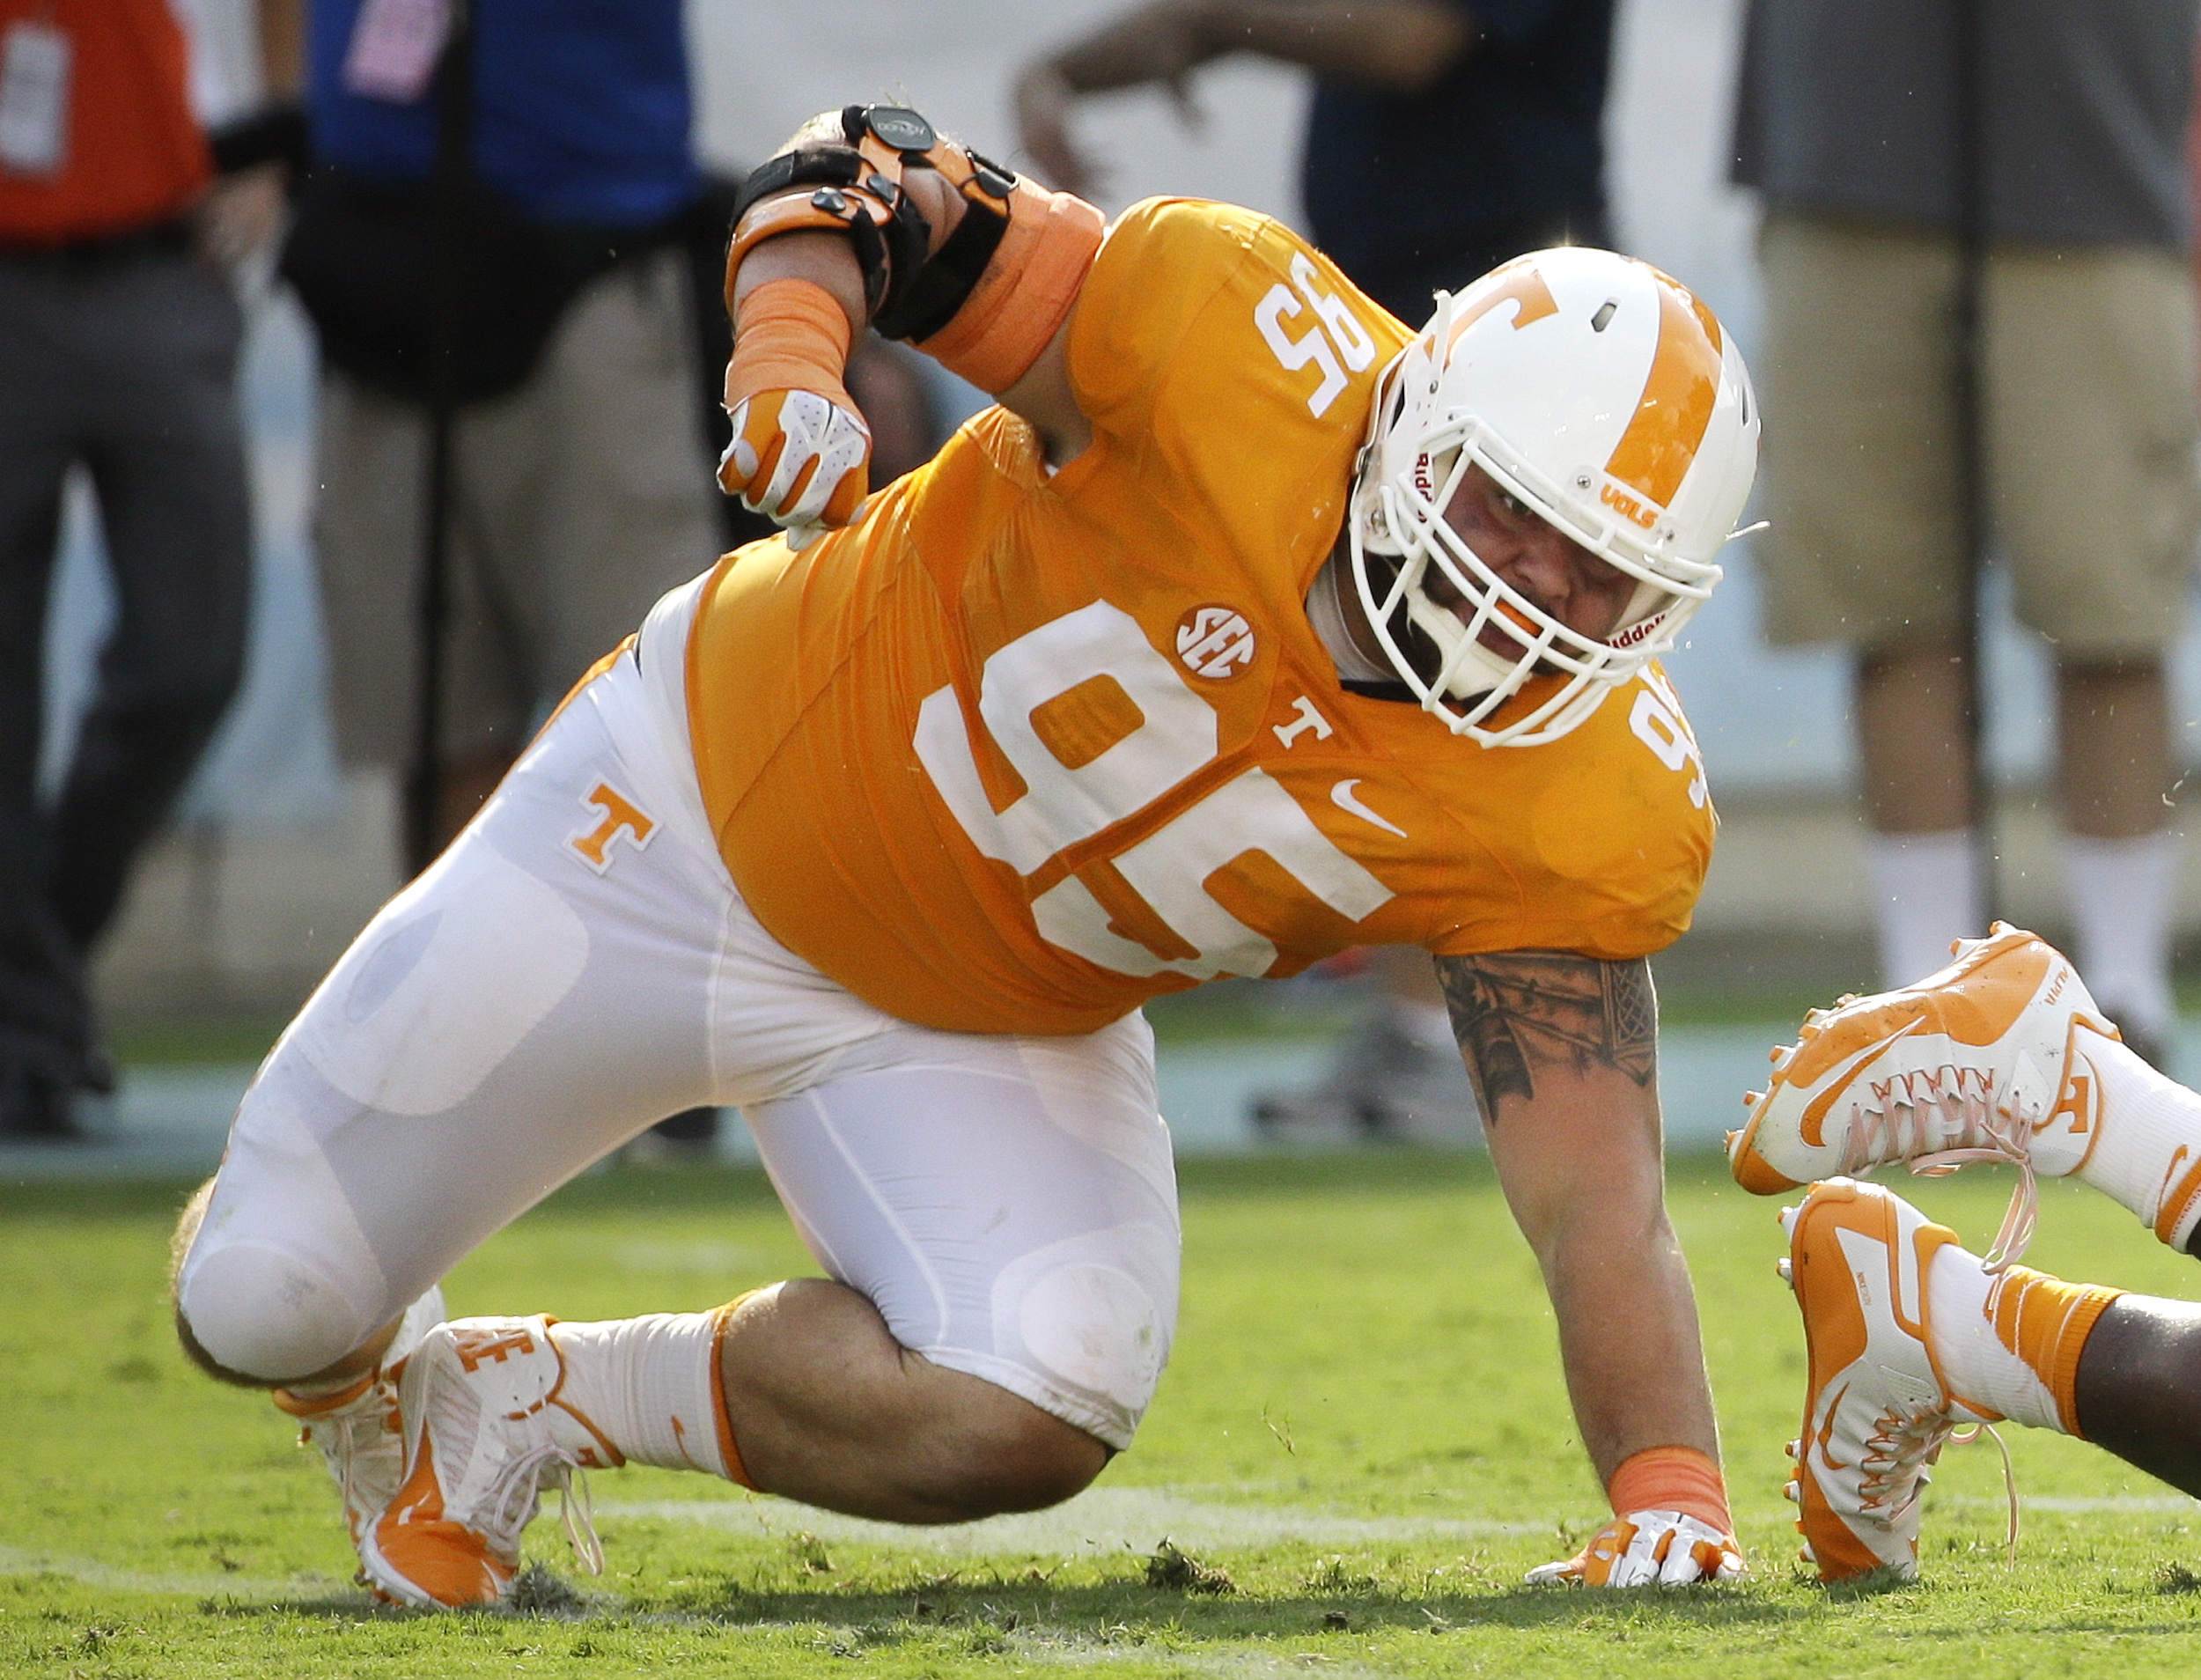 In this Sept. 5, 2015, photo, Tennessee defensive lineman Danny O'Brien (95) plays in the Vols' 59-30 win over Bowling Green in Nashville. O'Brien has been suspended for what Volunteers coach Butch Jones described as a violation of team rules and policies